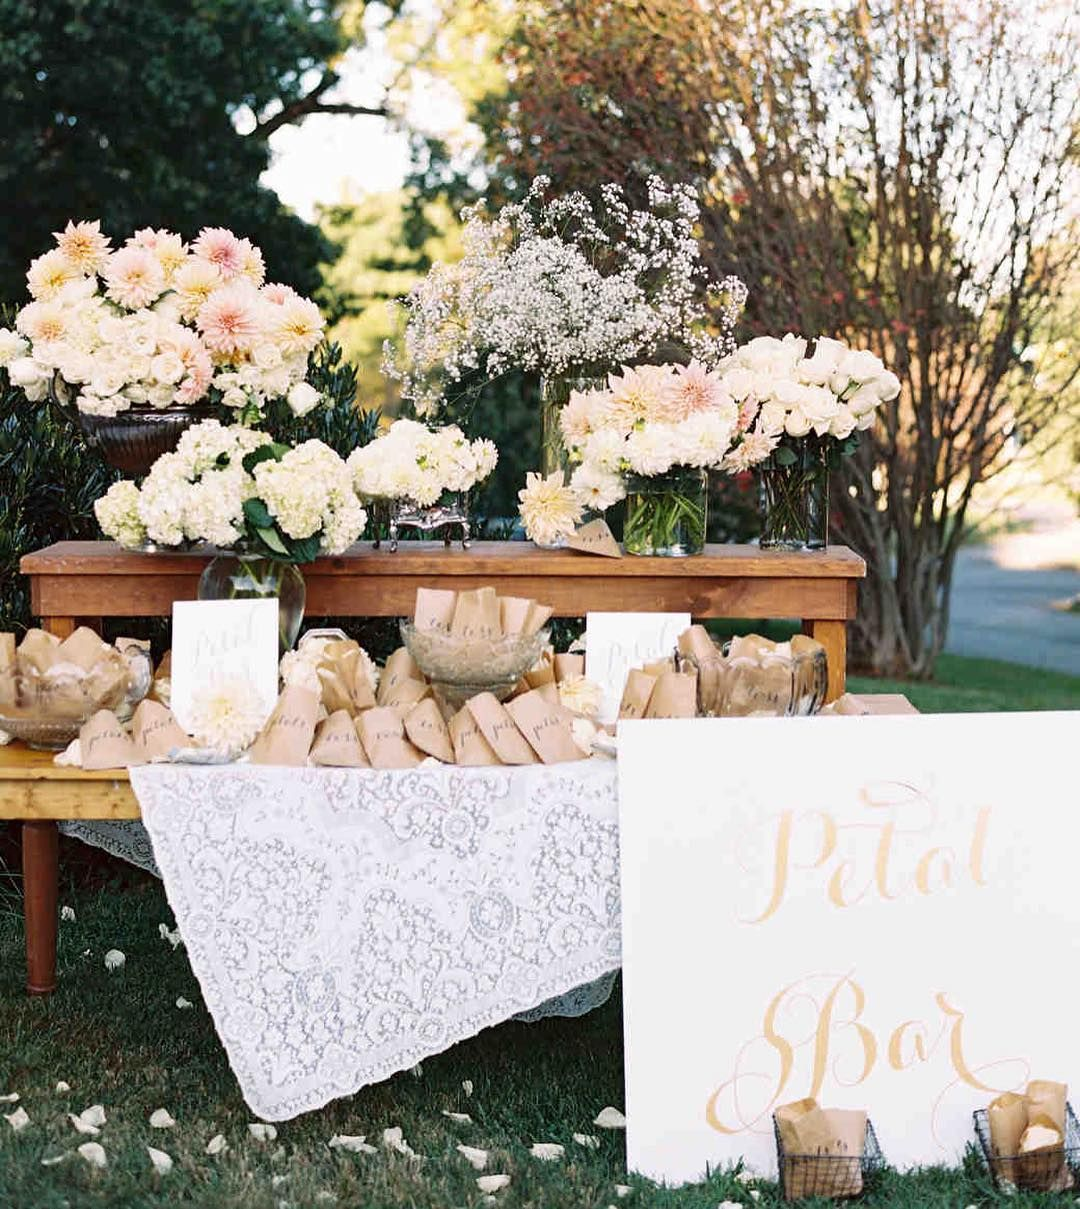 Wedding decorations without flowers  Martha Stewart Weddings on Instagram ucRather than supplying a